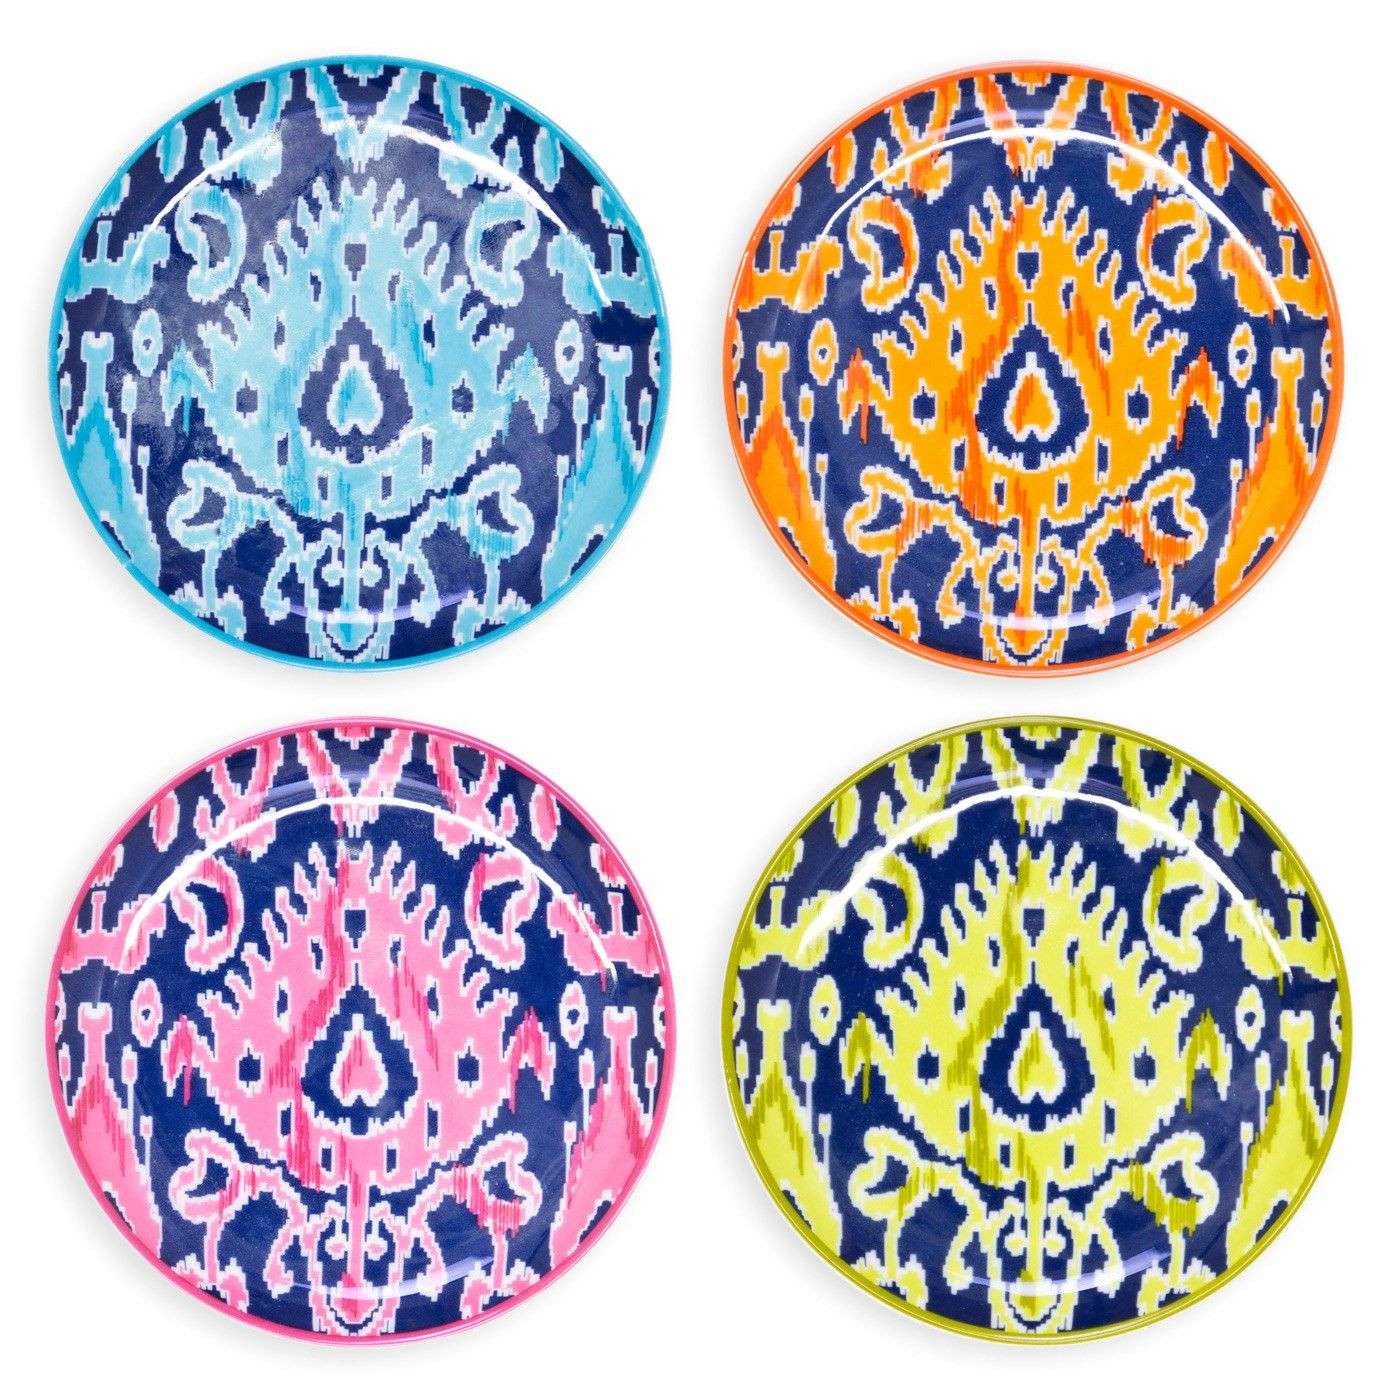 jonathan adler head vase of jonathan adler tangiers coaster set of 4 things i just love with jonathan adler tangiers coaster set of 4